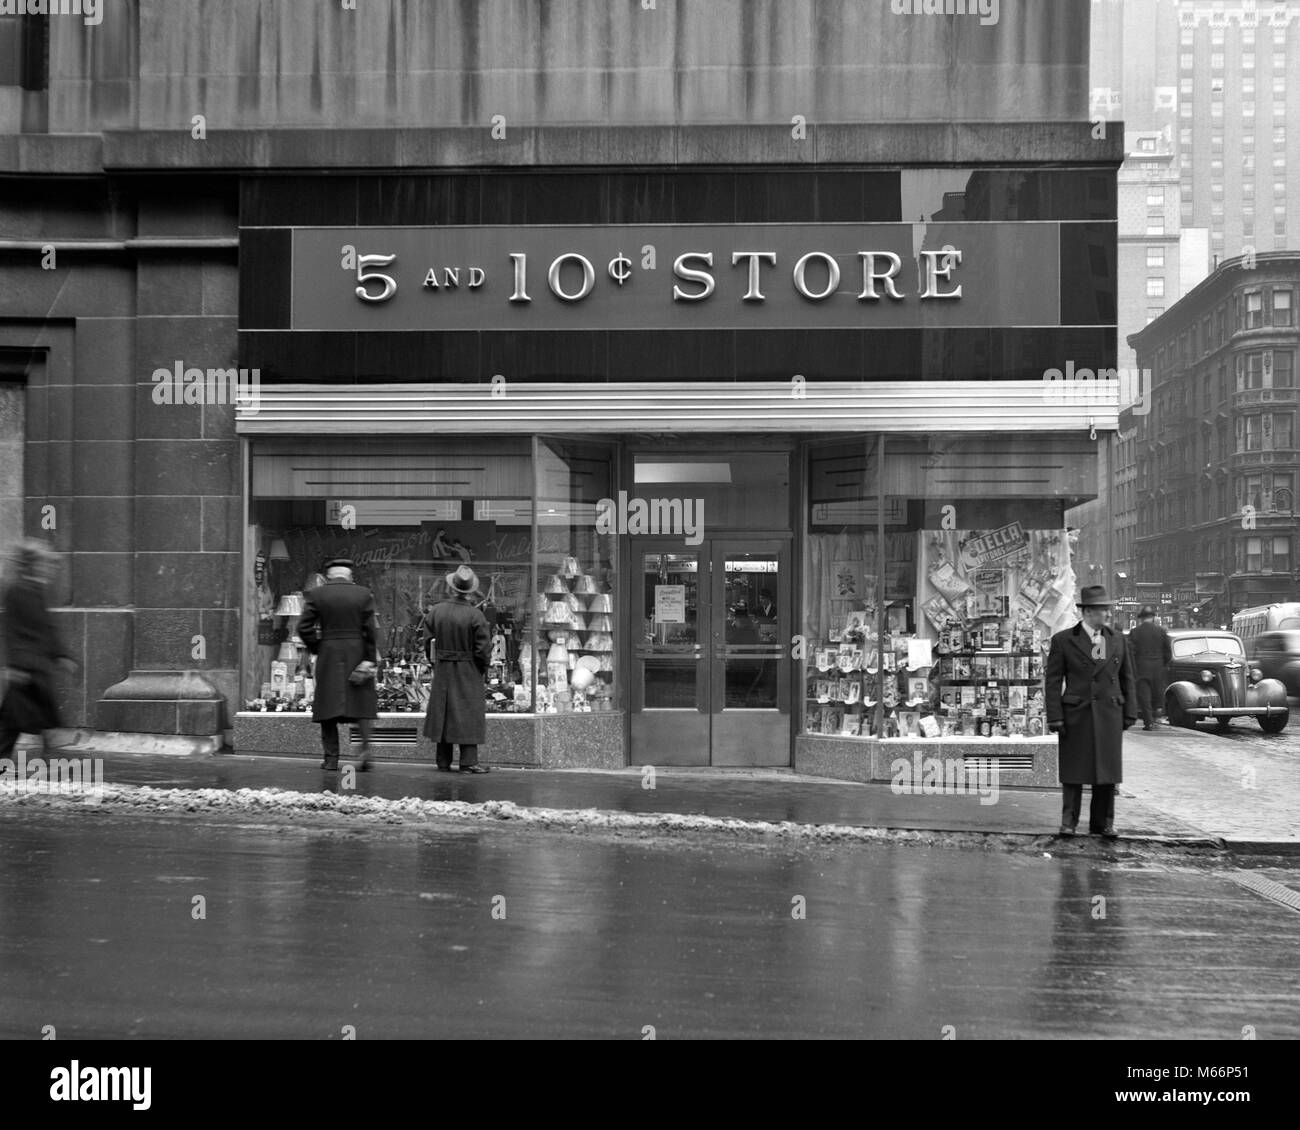 1940s FACADE OF M.H. LAMSTON 5 & 10 CENT STORES 45TH STREET AND LEXINGTON AVENUE MANHATTAN NEW YORK CITY USA - q40381 Stock Photo